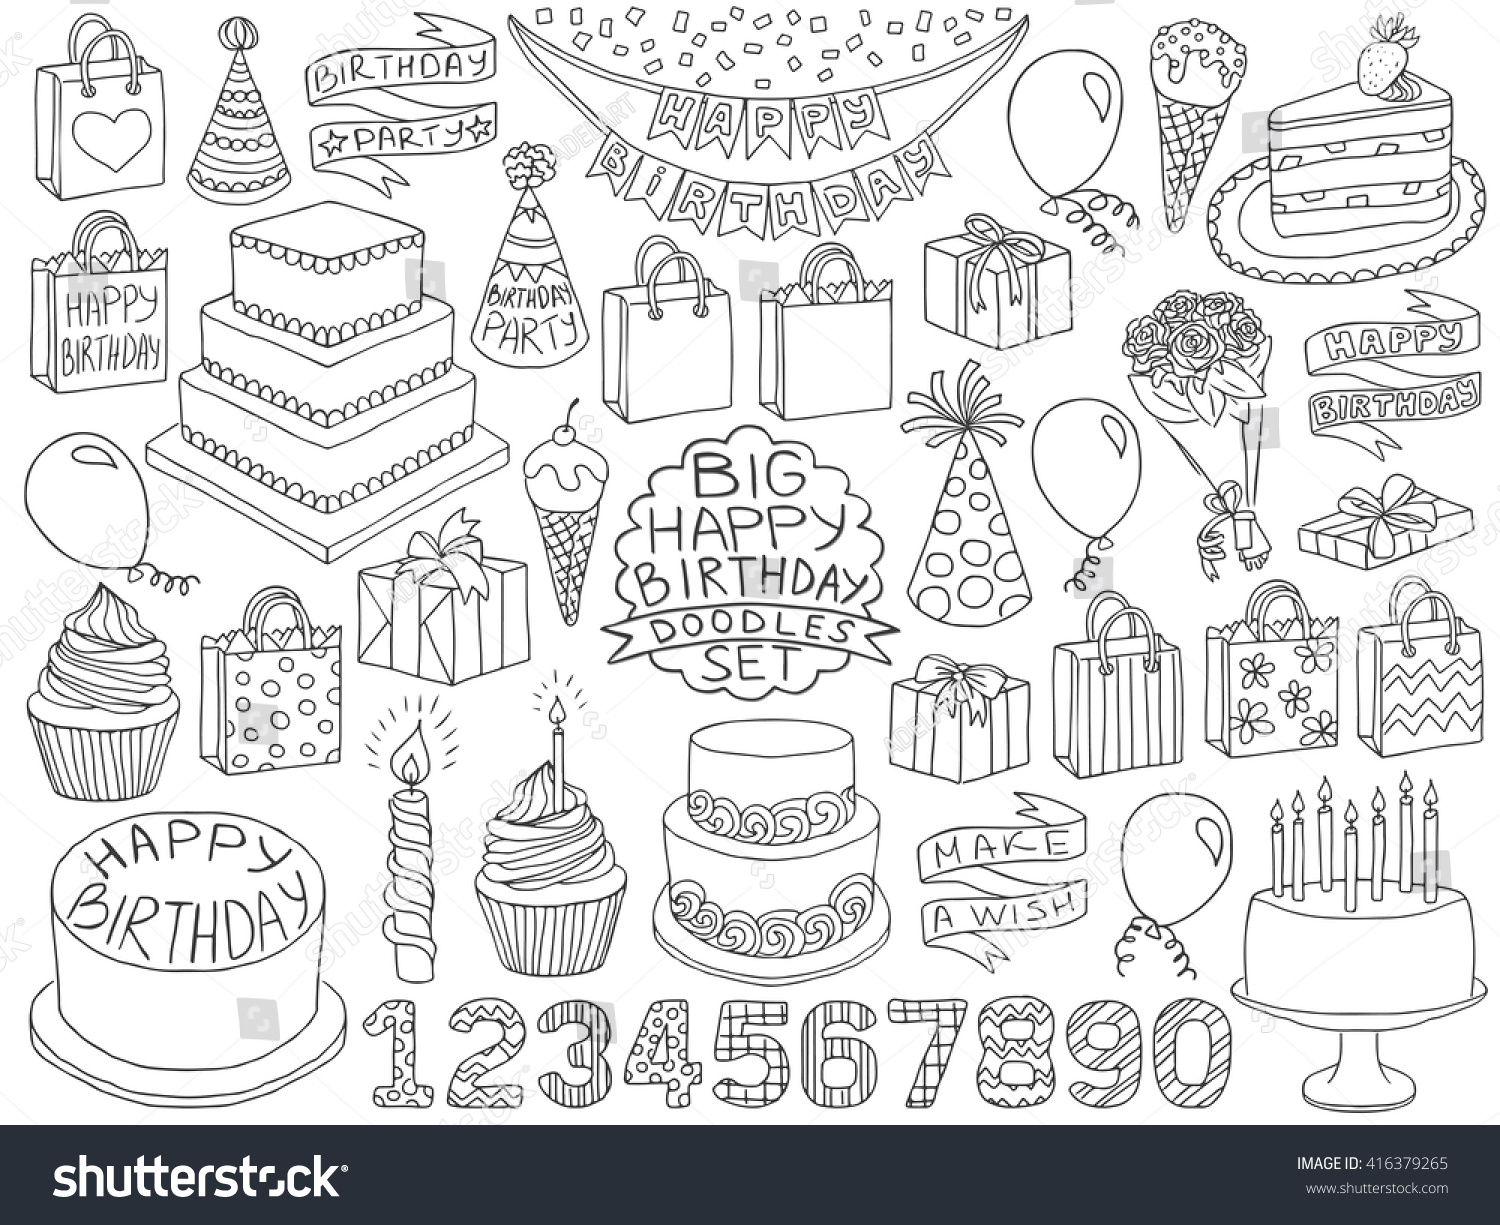 Happy birthday doodles set birthday pencil effect sketches birthday cake present boxes and